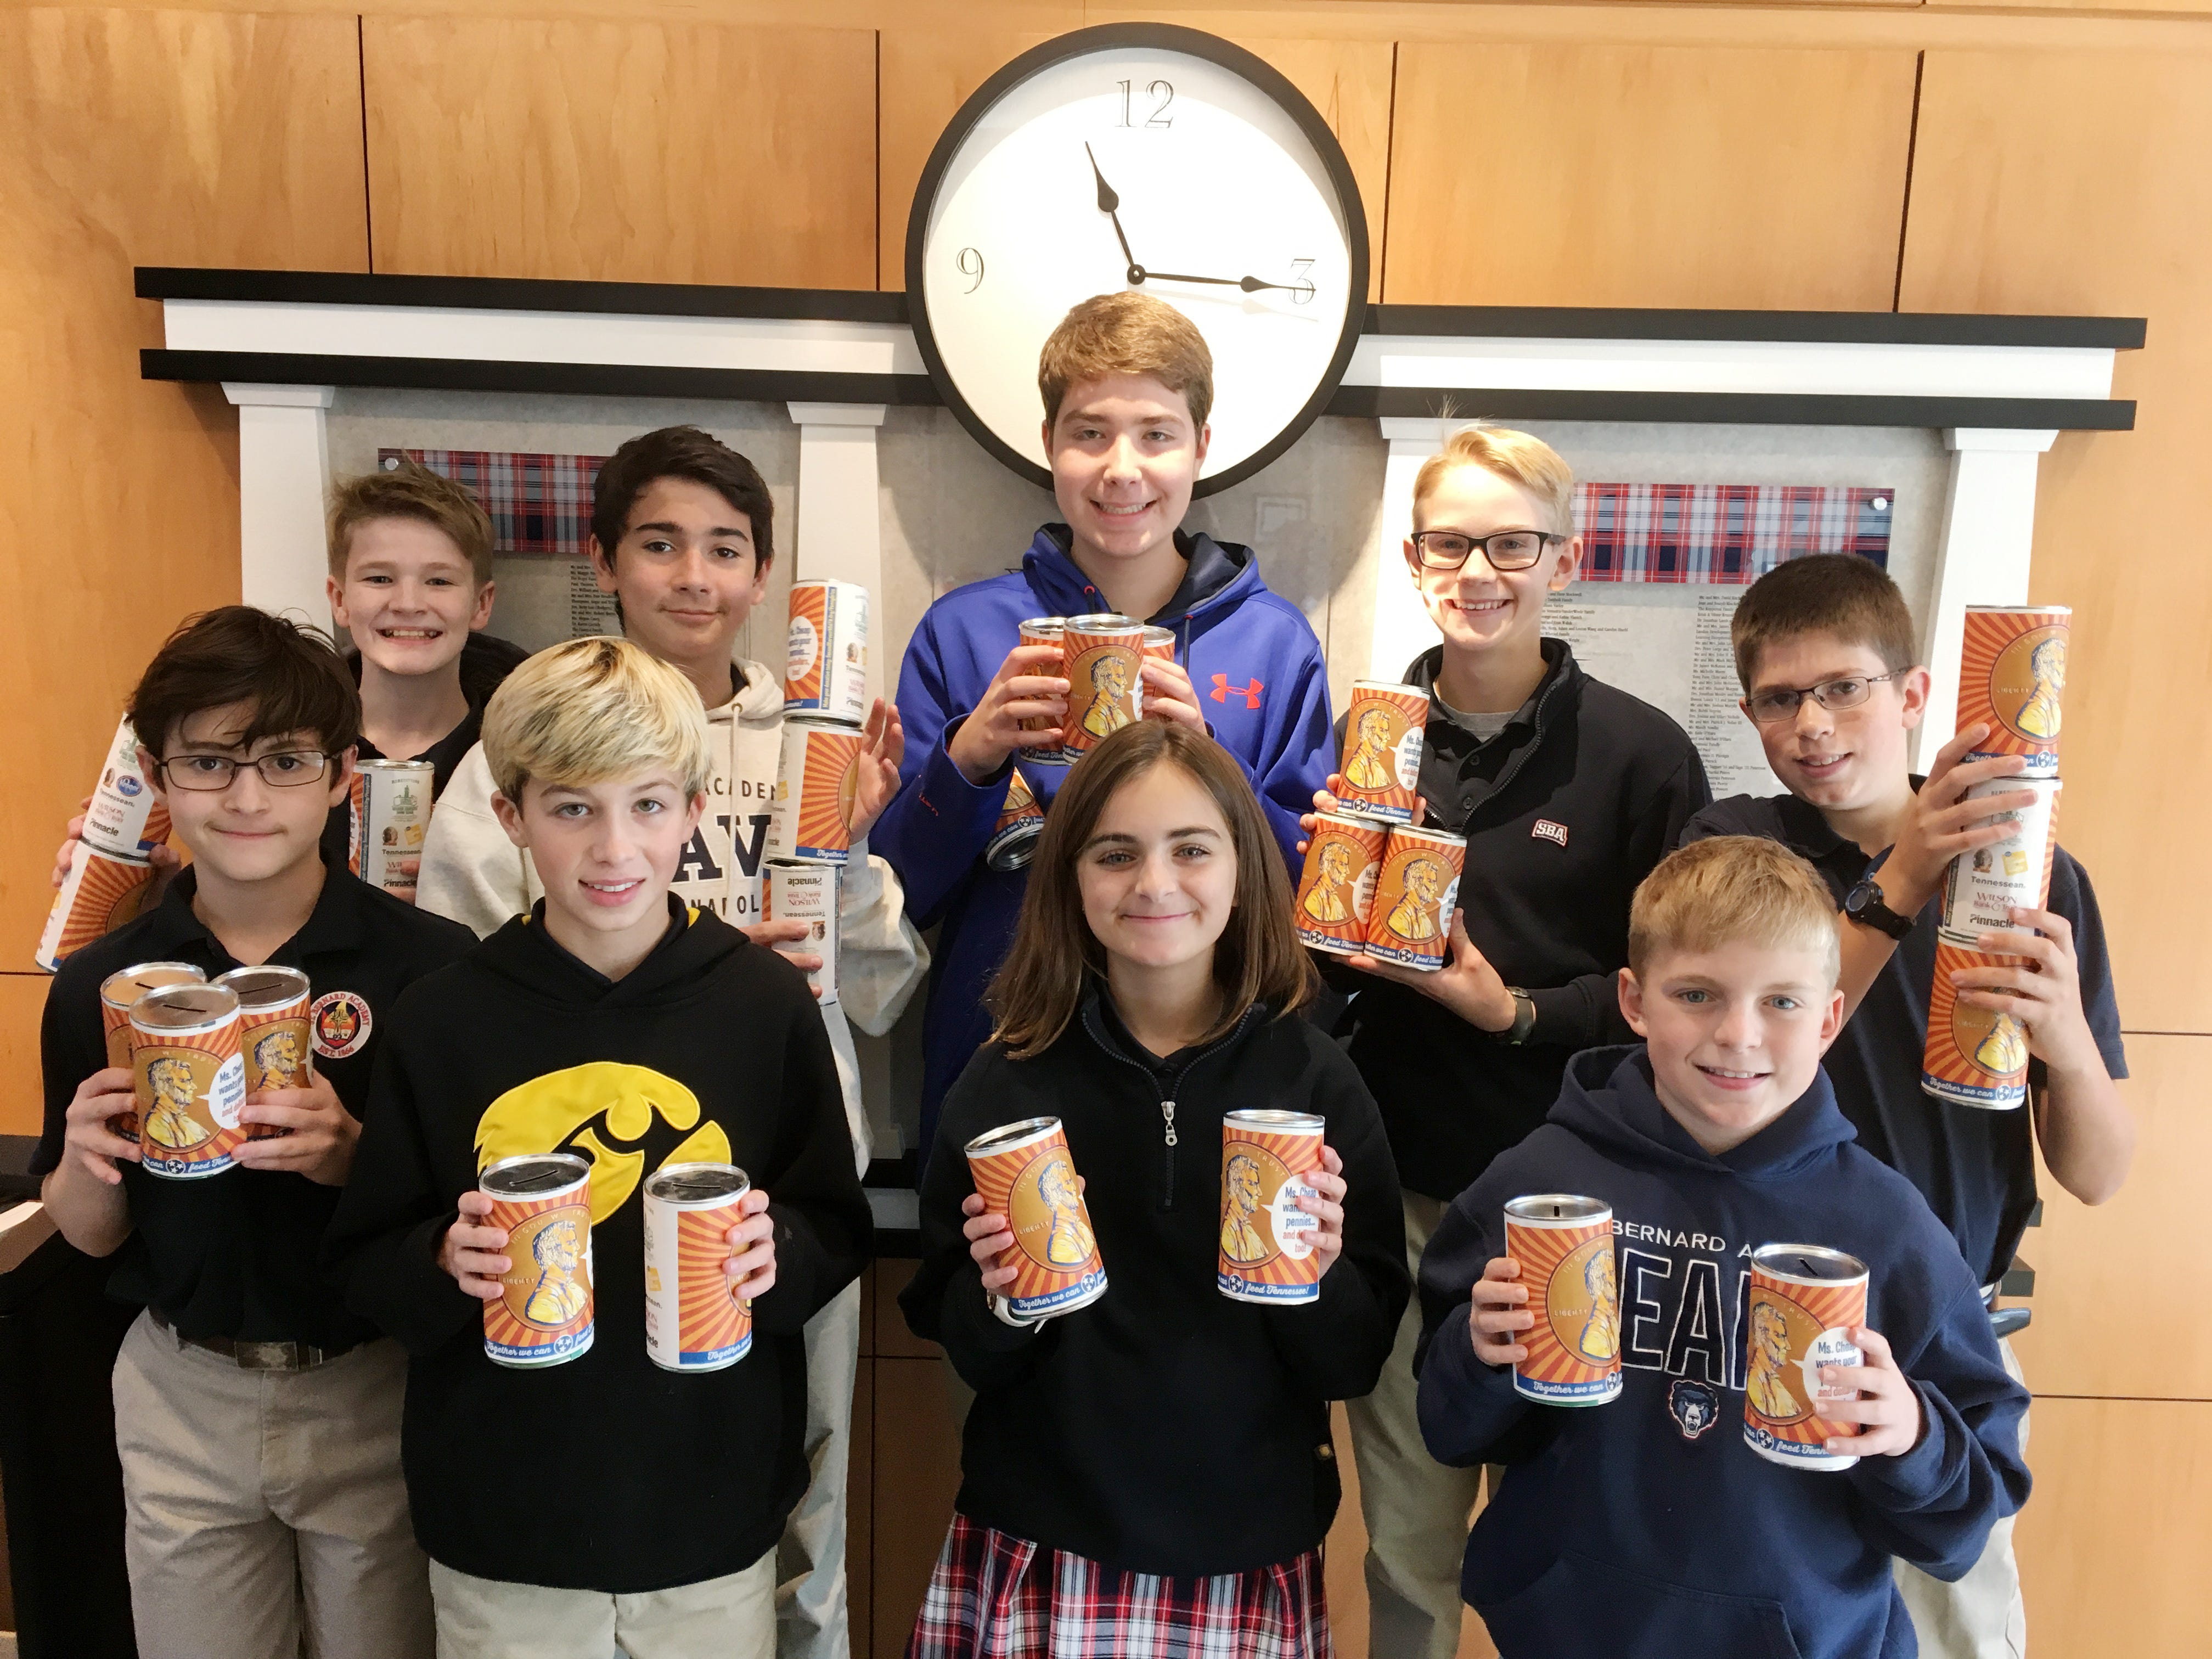 St. Bernard Academy students show off their Penny Drive cans. Eighth-grader Alec Jacobs (in blue in the middle) organized the drive for his school.